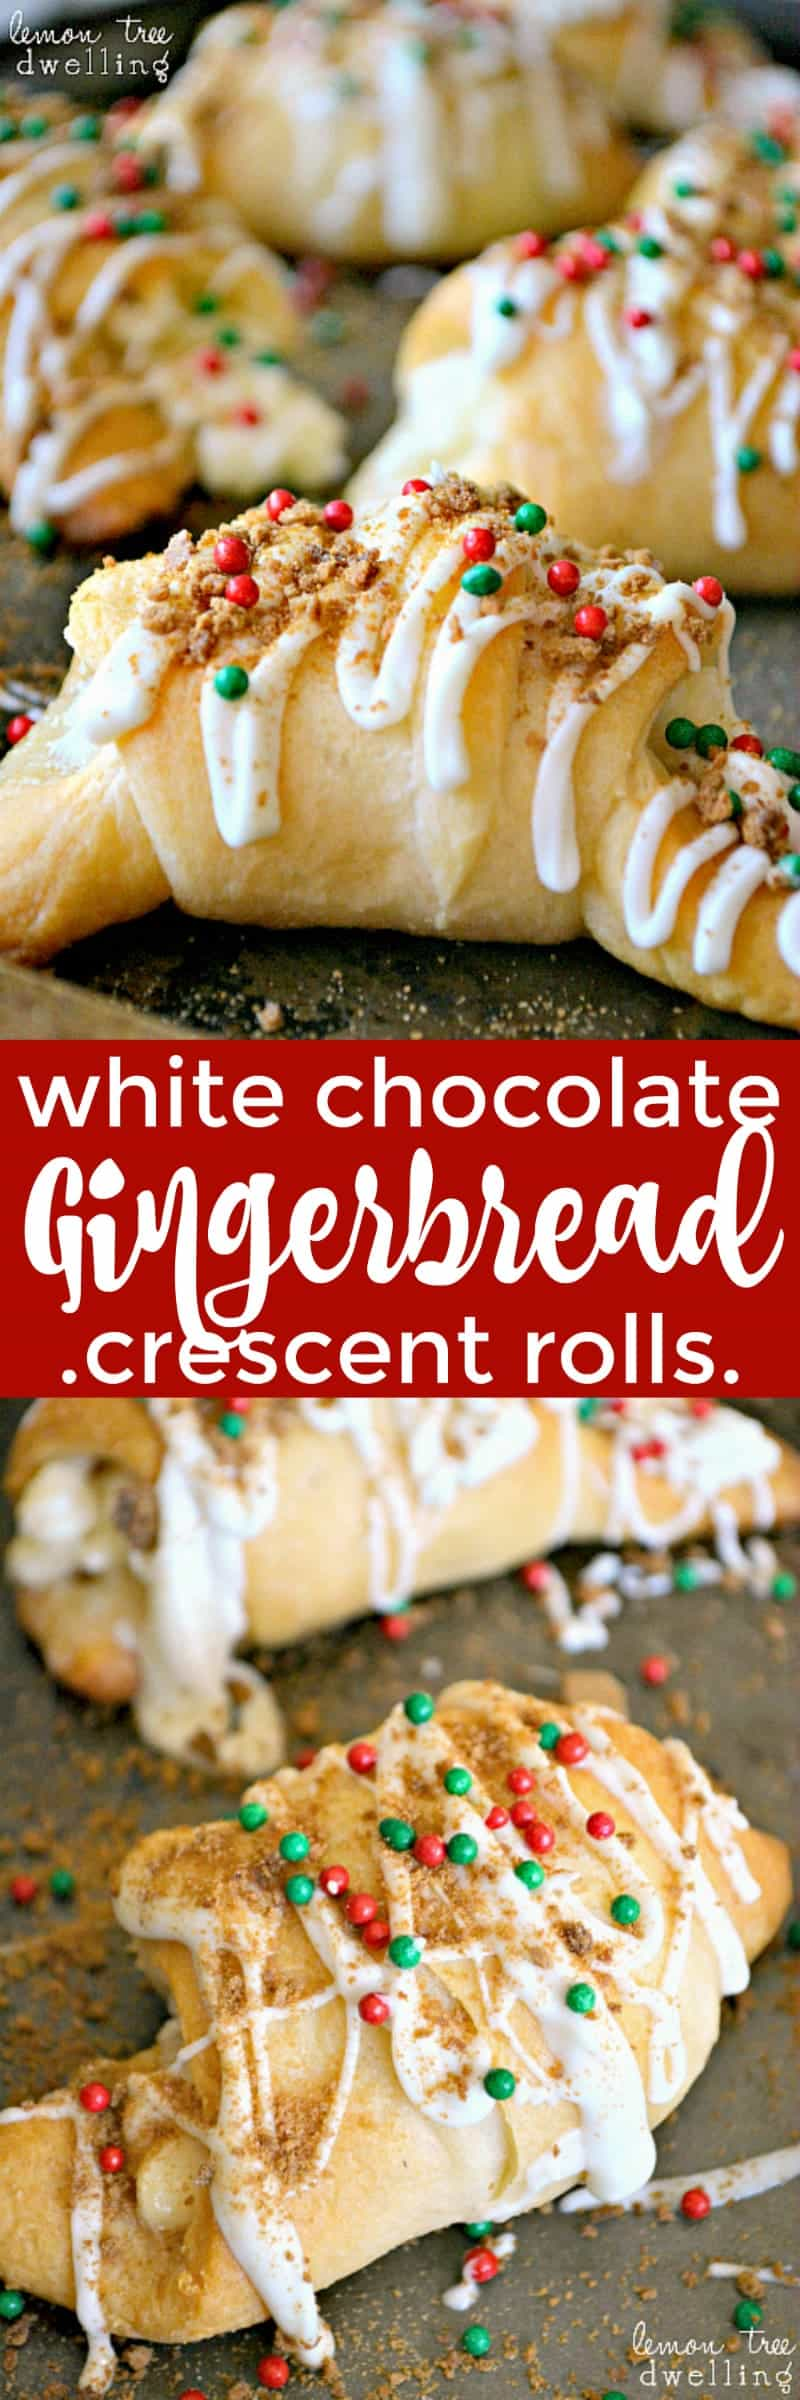 These White Chocolate Gingerbread Crescent Rolls are filled with gooey white chocolate, cream cheese, and crushed gingersnaps and topped with a white chocolate gingersnap drizzle. A perfect holiday breakfast treat!